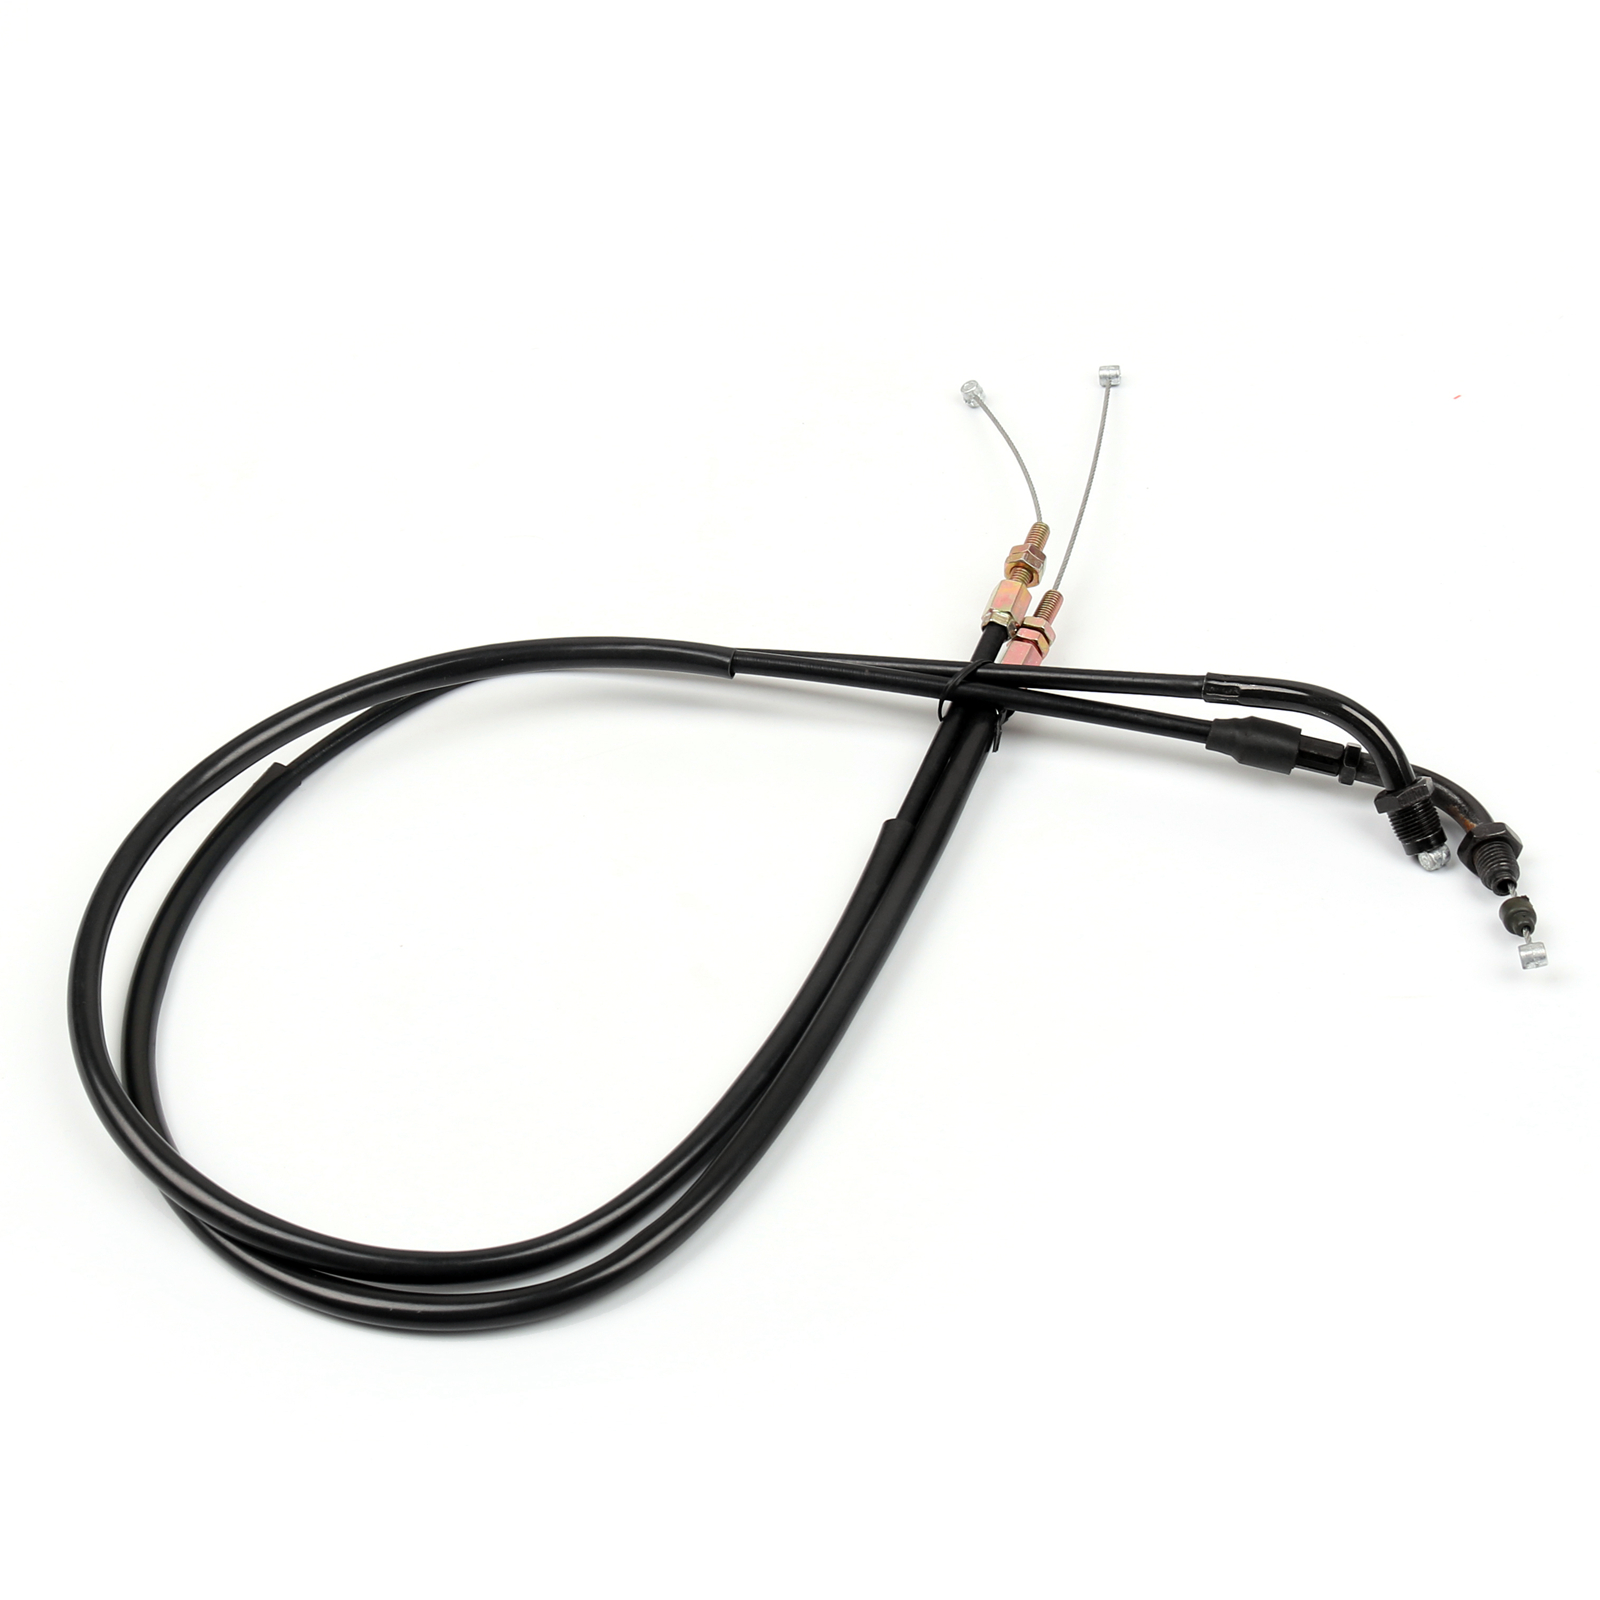 Throttle Cable For Honda Cb400 Vtec Nc39 Black